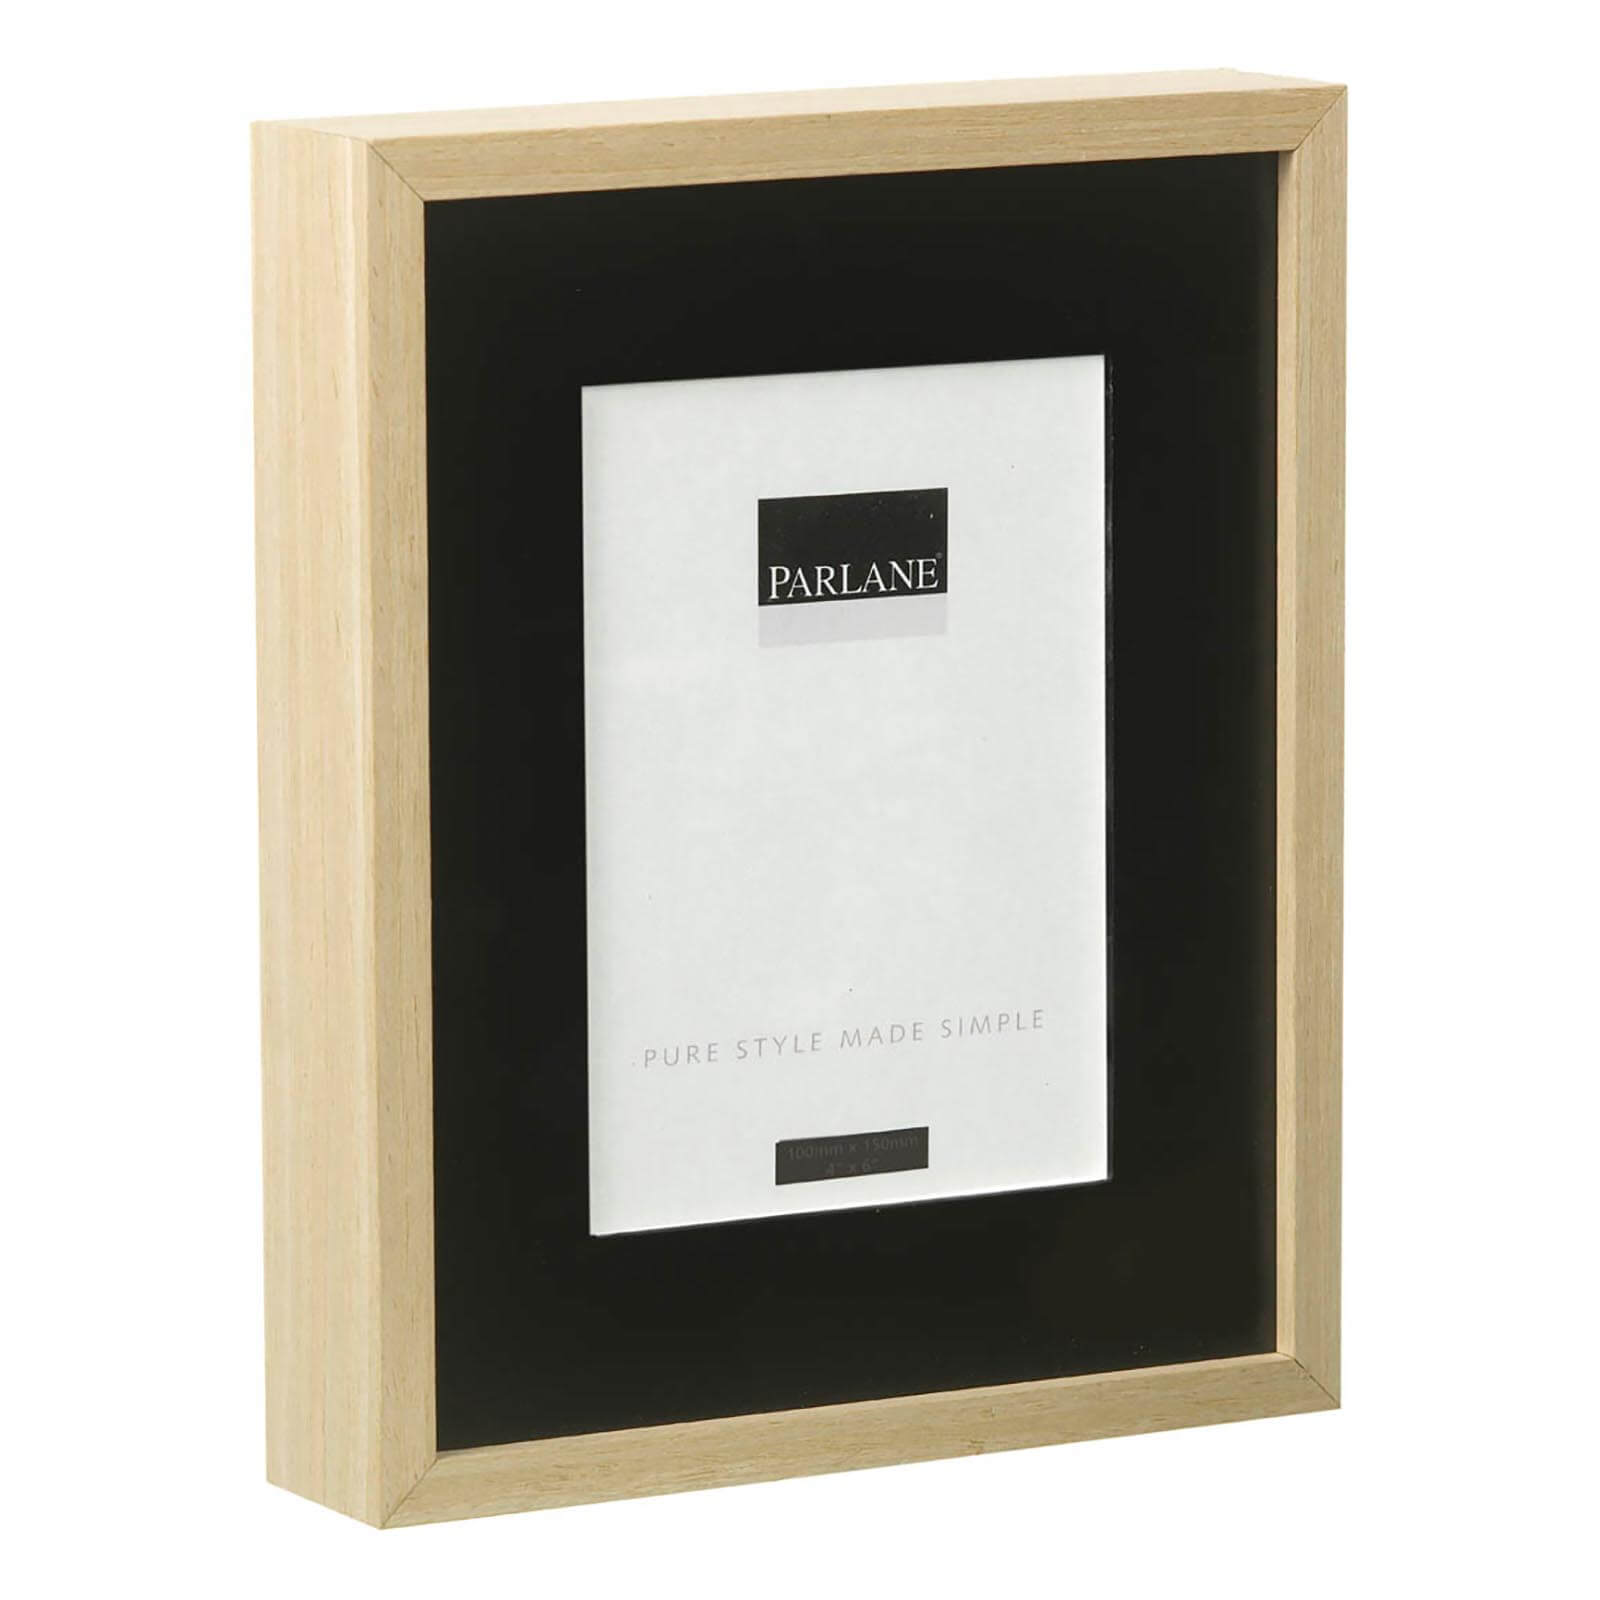 Parlane Solna Frame - Black/Natural (270x220mm)